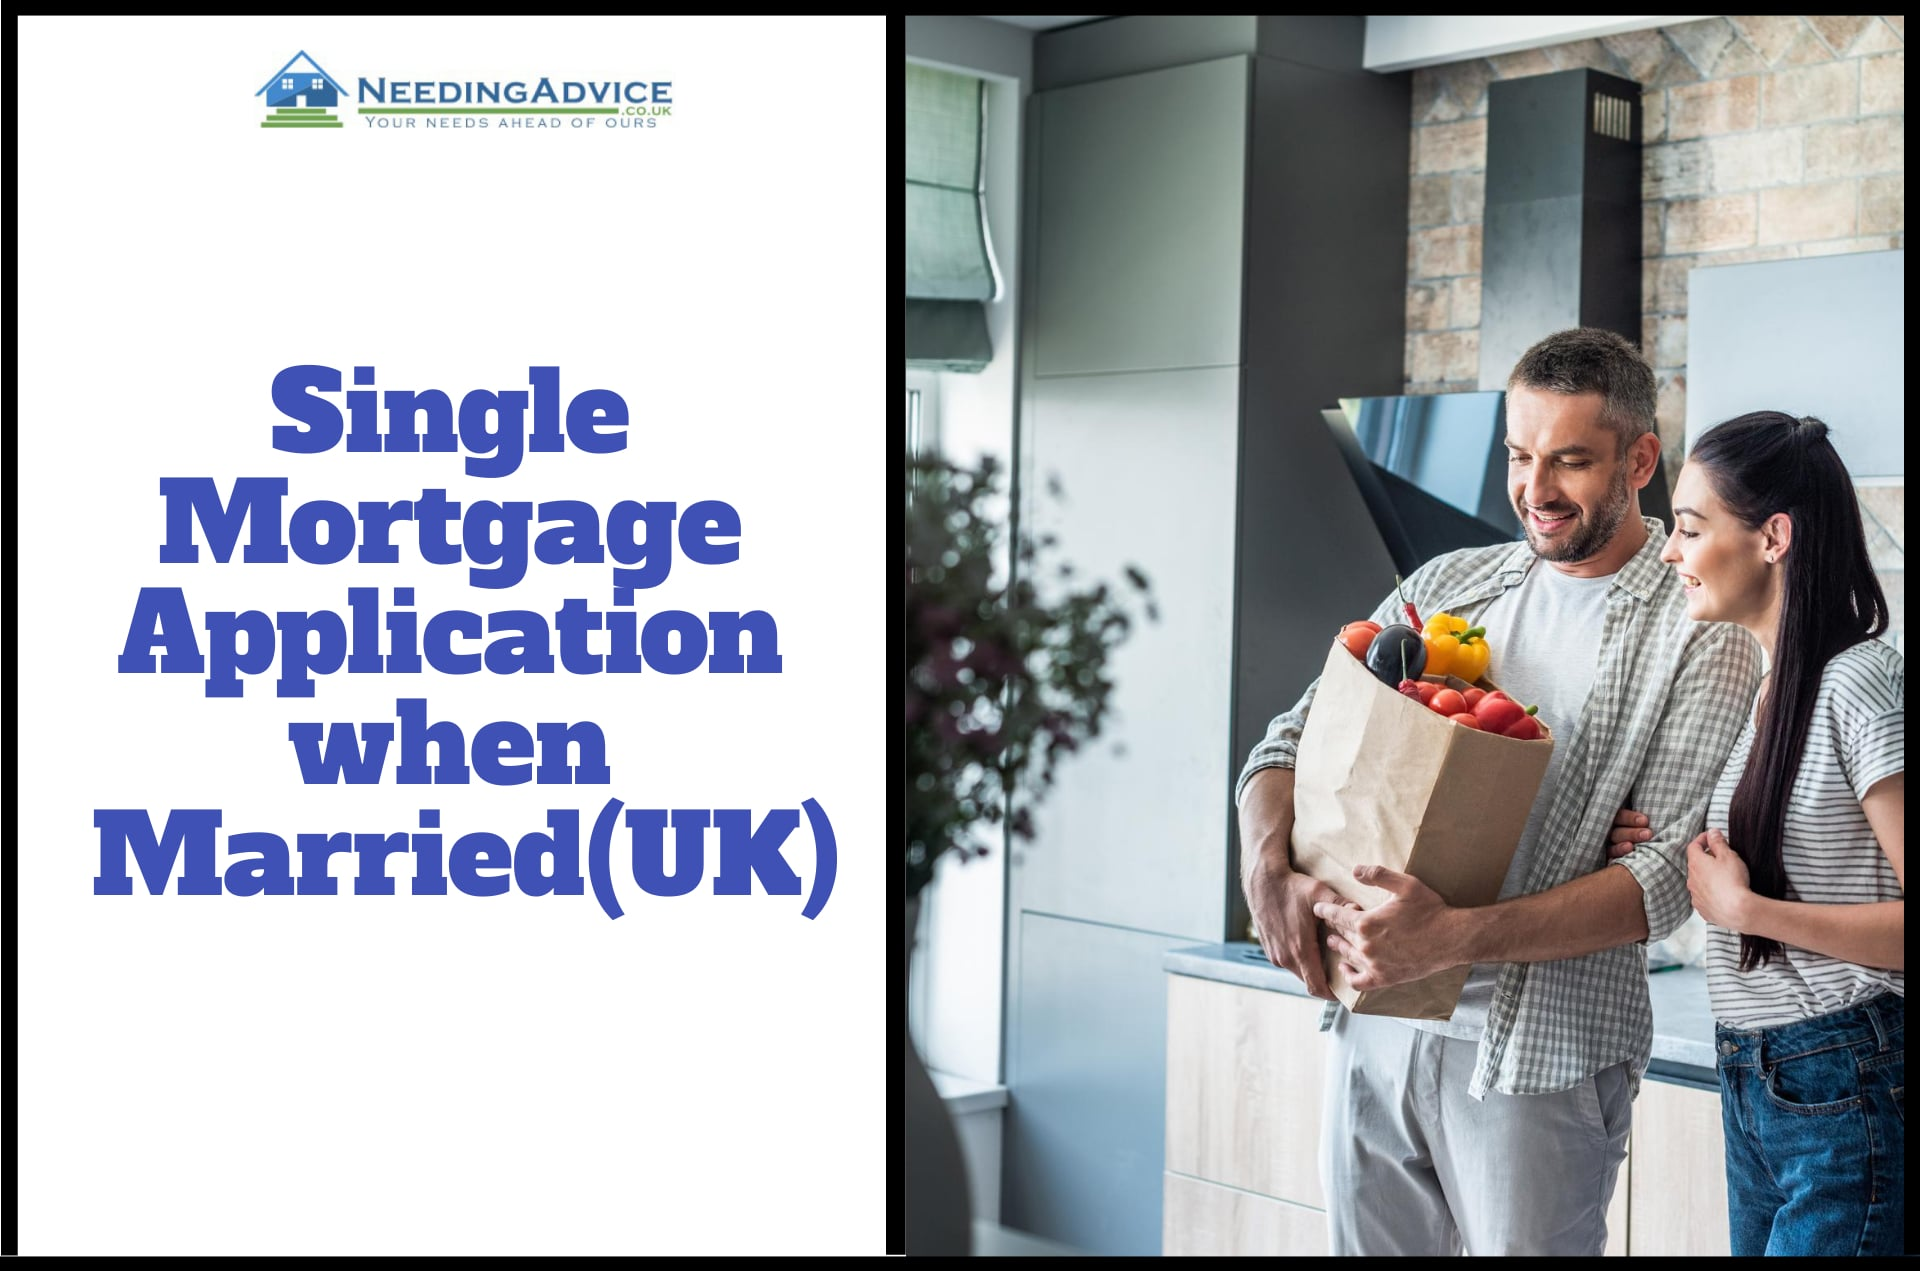 Single Mortgage Application when Married in UK